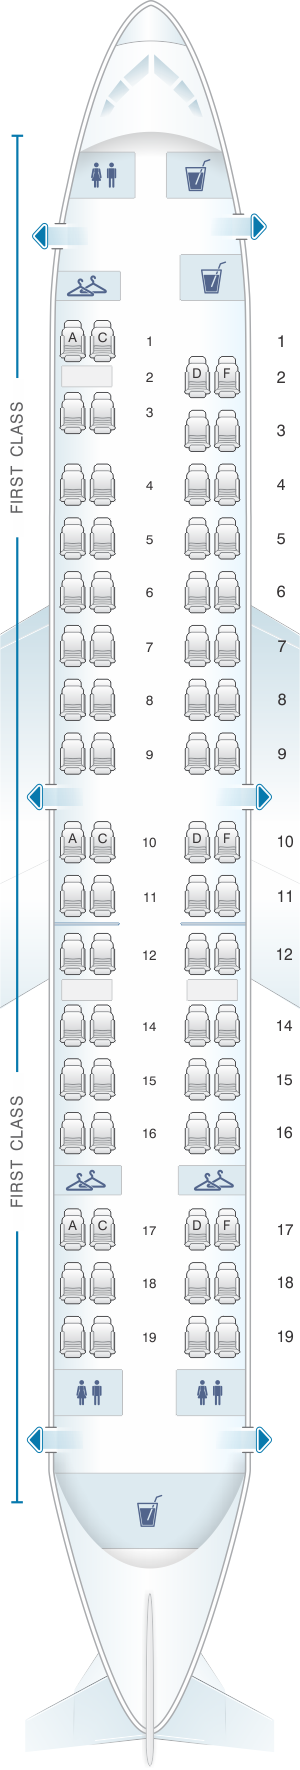 Seat map for Miami Air Boeing B737 400